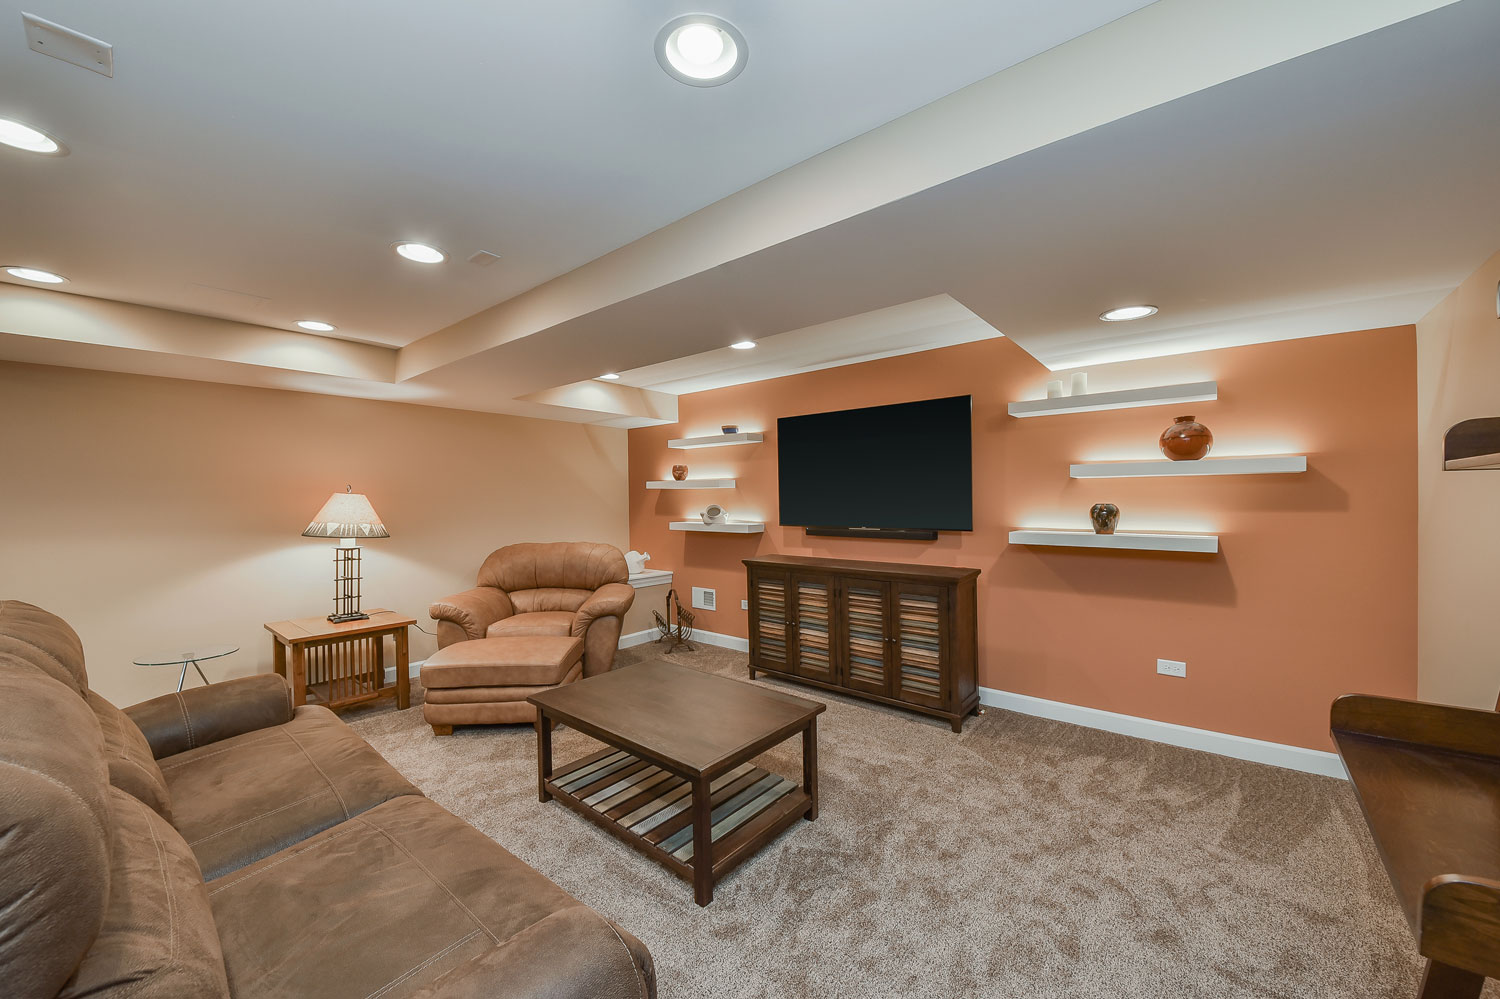 Carole 39 s basement remodel pictures home remodeling contractors sebring services - Remodel basement ideas ...